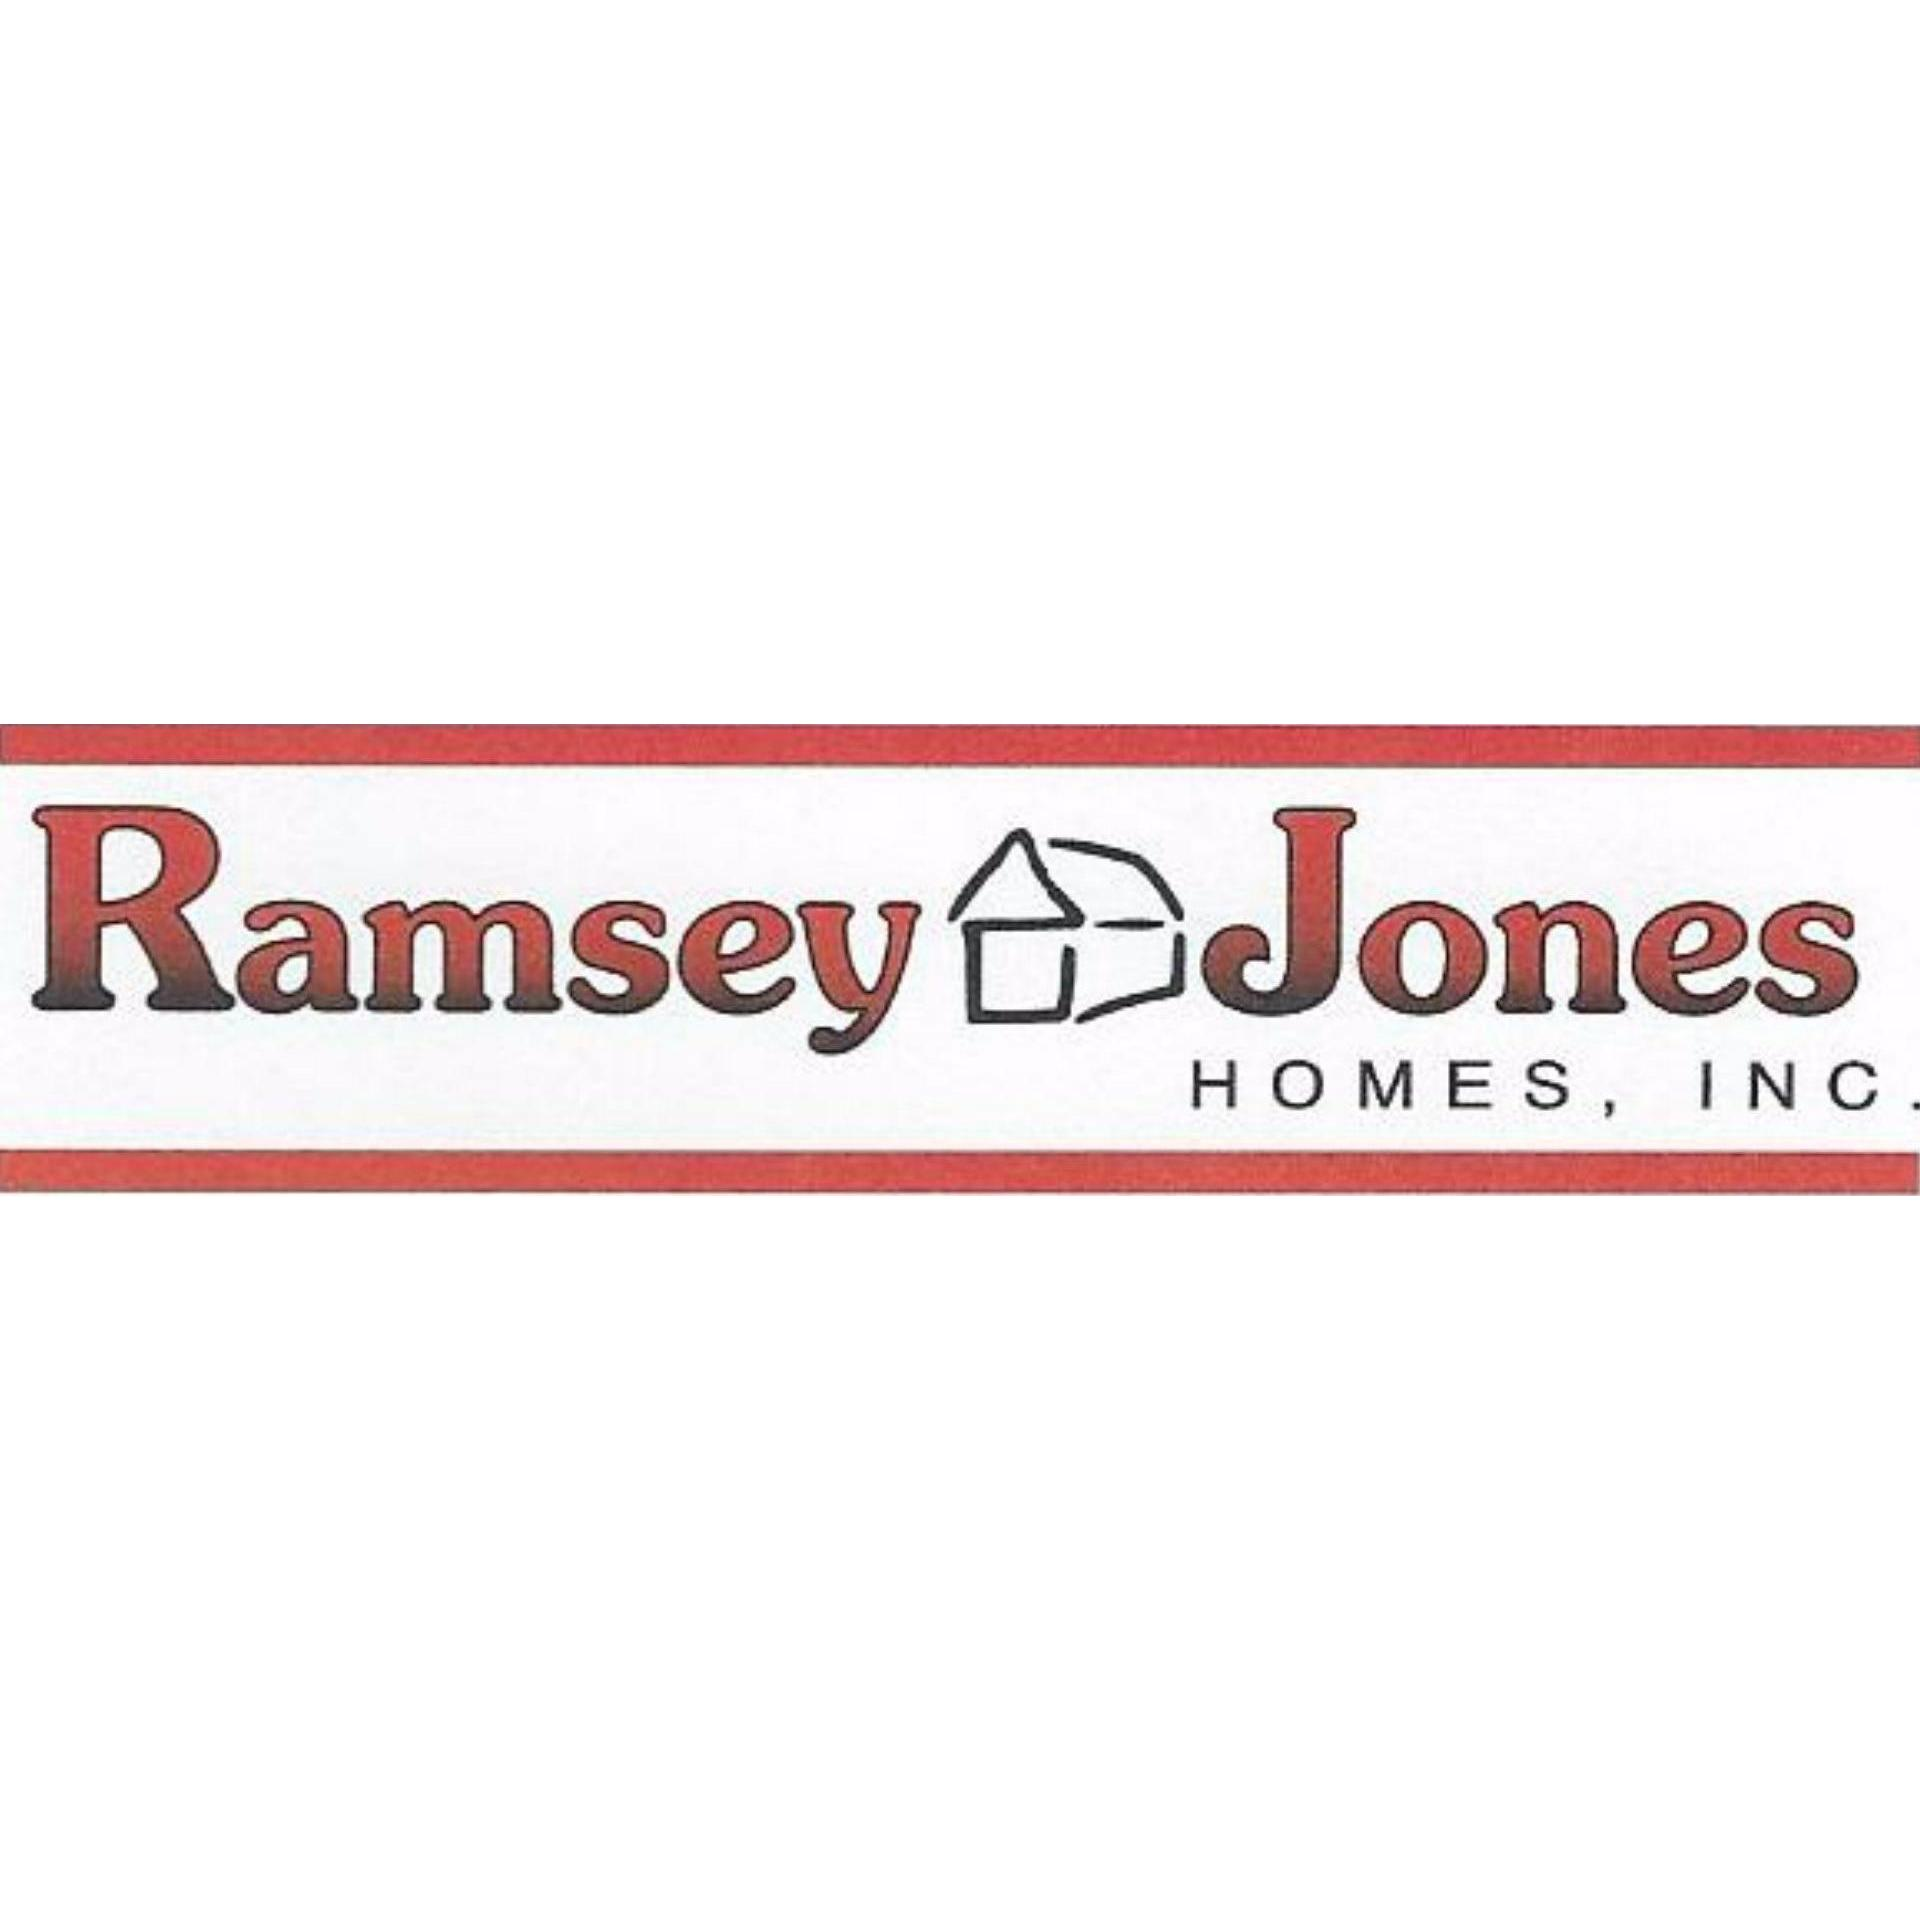 Ramsey Jones Homes, Inc. - LaGrange, MO - Mobile Homes